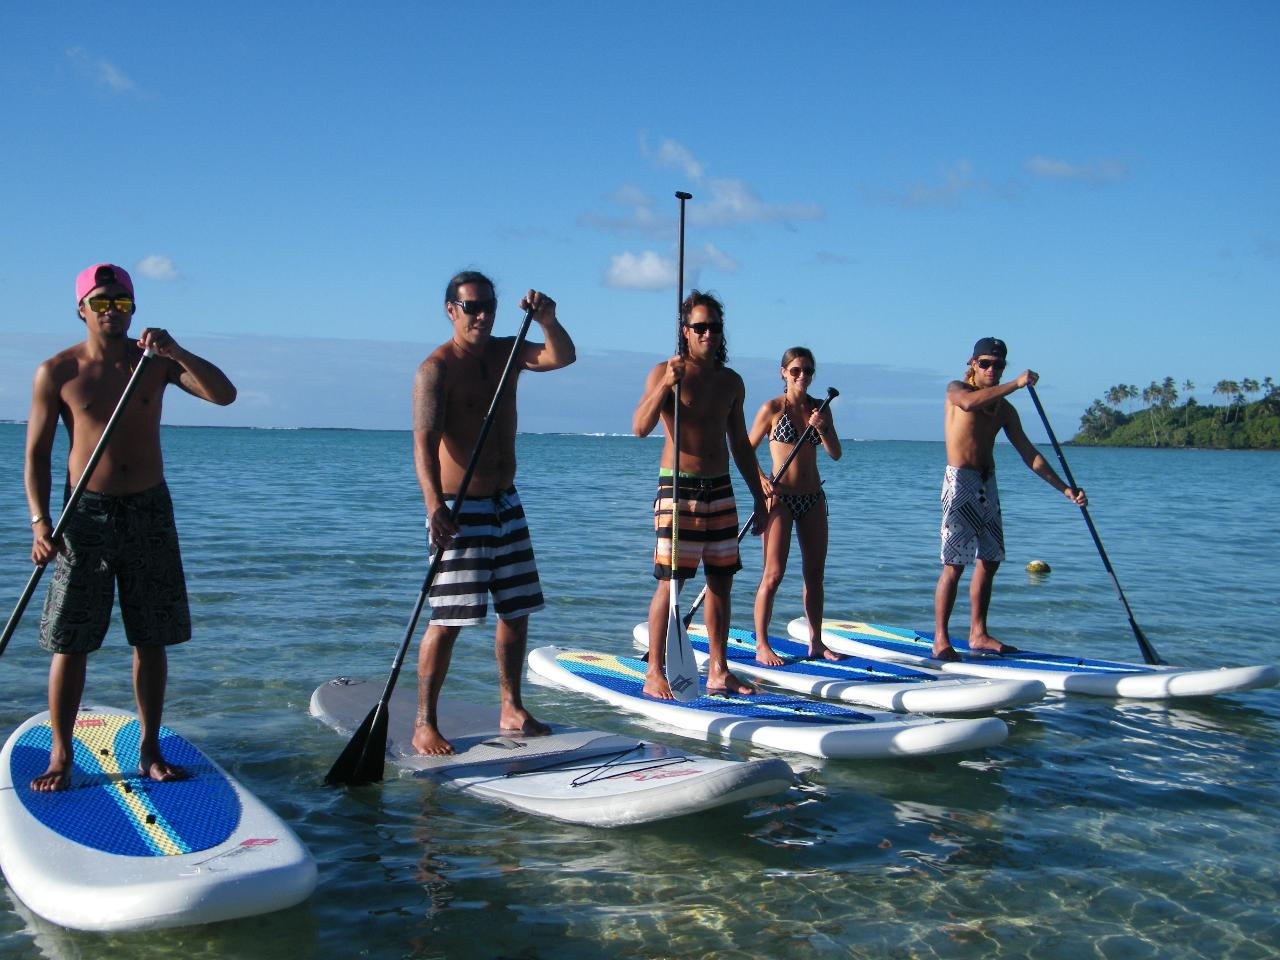 SUP (Stand Up Paddleboard)